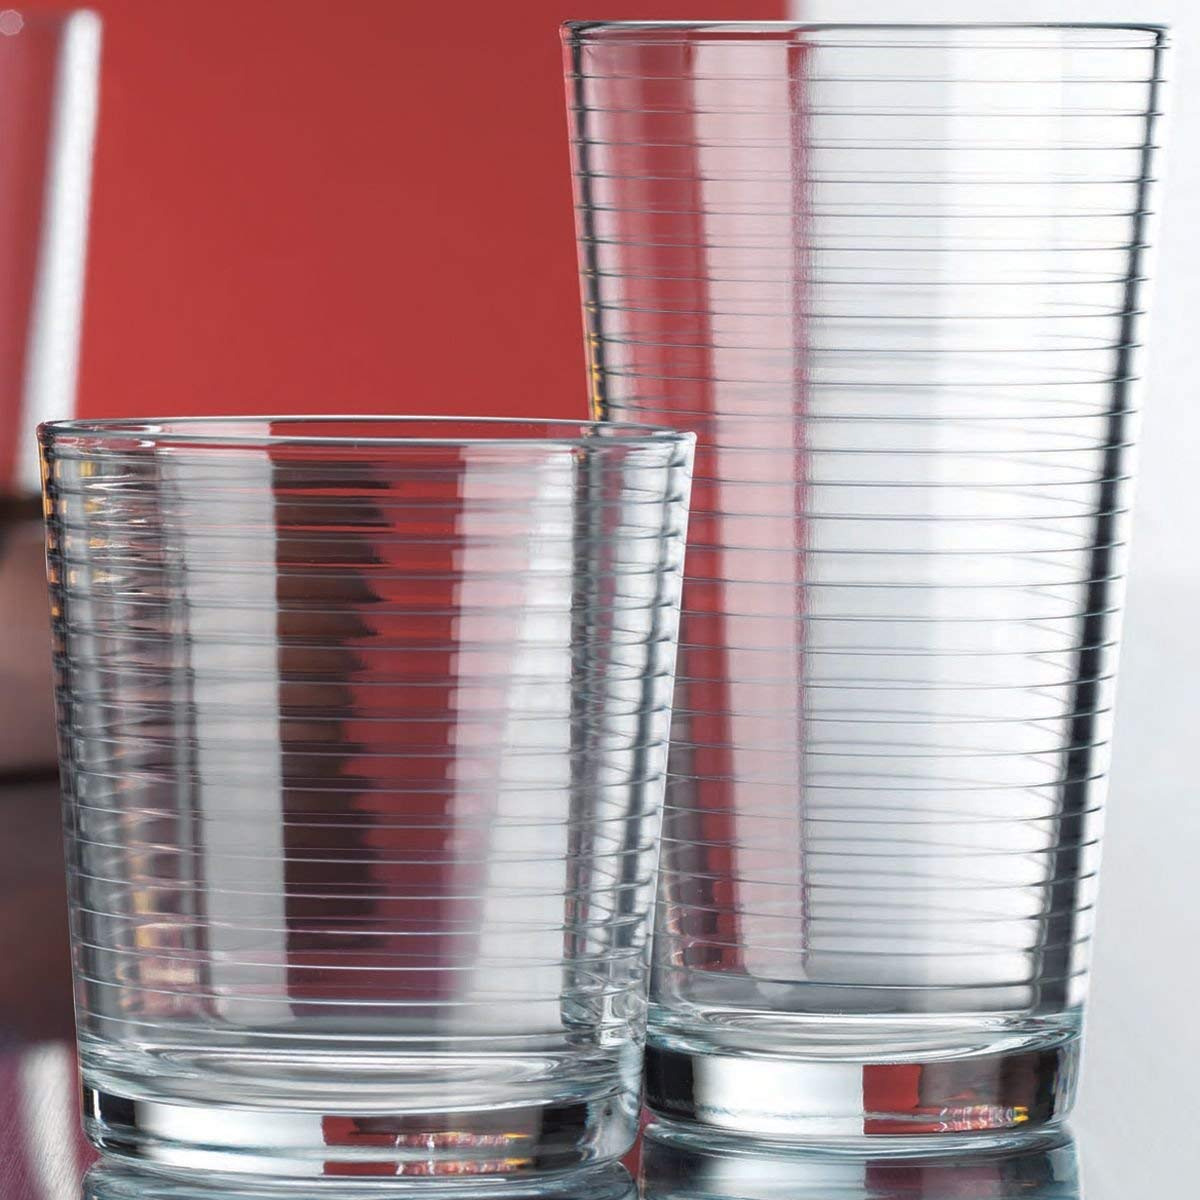 Set of 12 Durable Drinking Glasses | Glassware Set Includes 6-17oz Highball Glasses 6-13oz DOF Glasses | Elegant Heavy Base Glass Cups for Water, Juice, Beer, Wine, and Cocktails